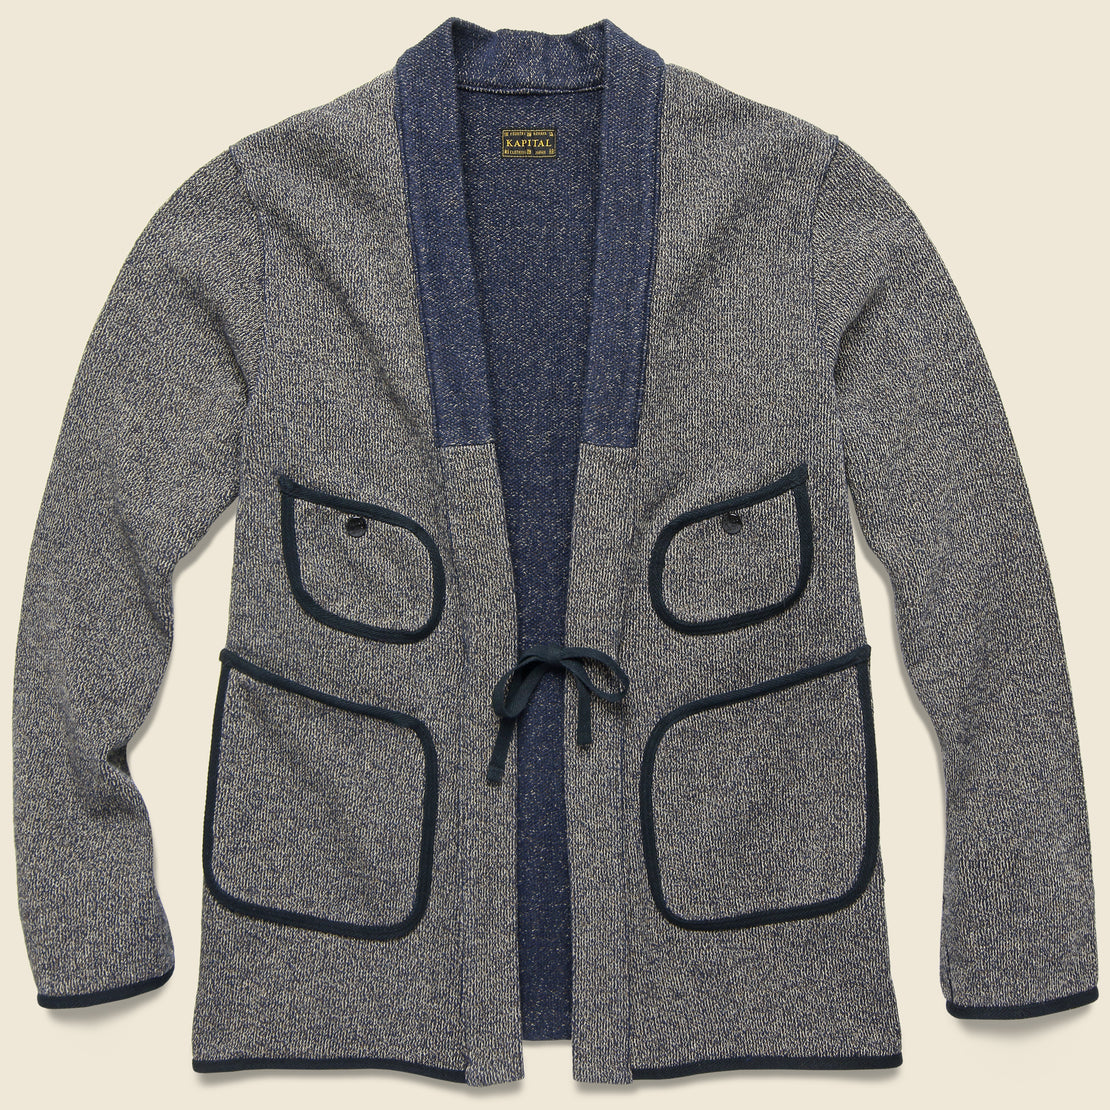 Kapital Beach Knit Kakashi Cardigan - Charcoal